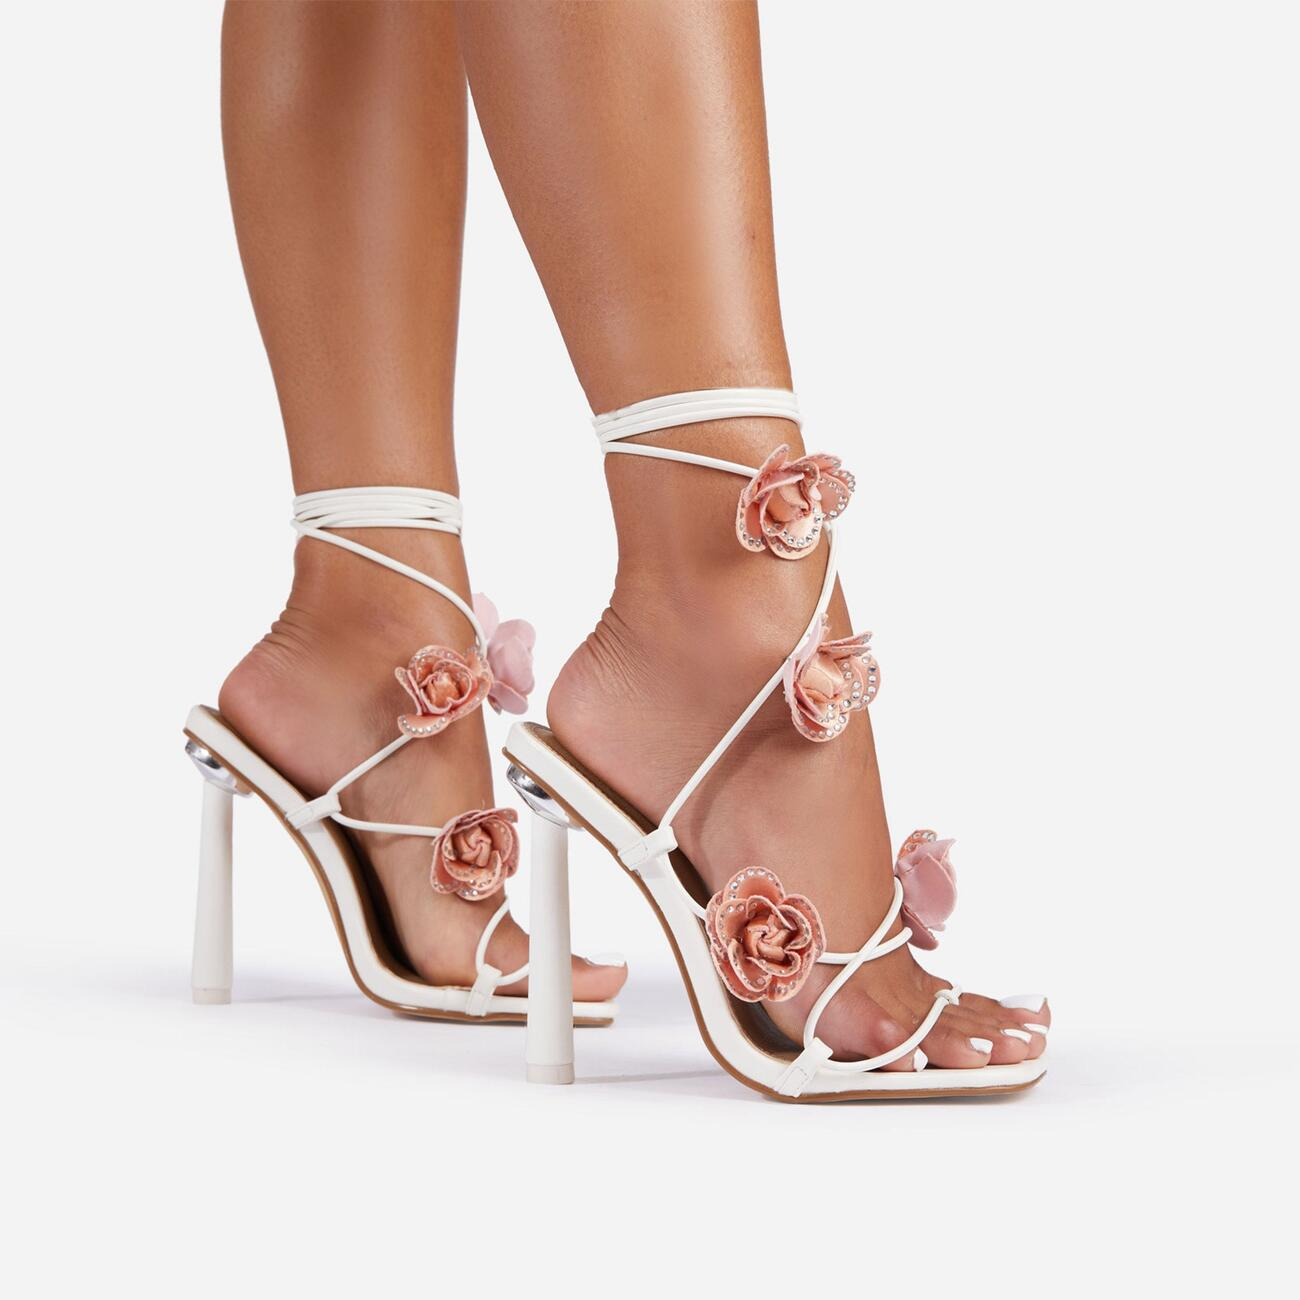 Rose Whip Embellished Floral Detail Lace Up Heel in White Faux Leather Image 2